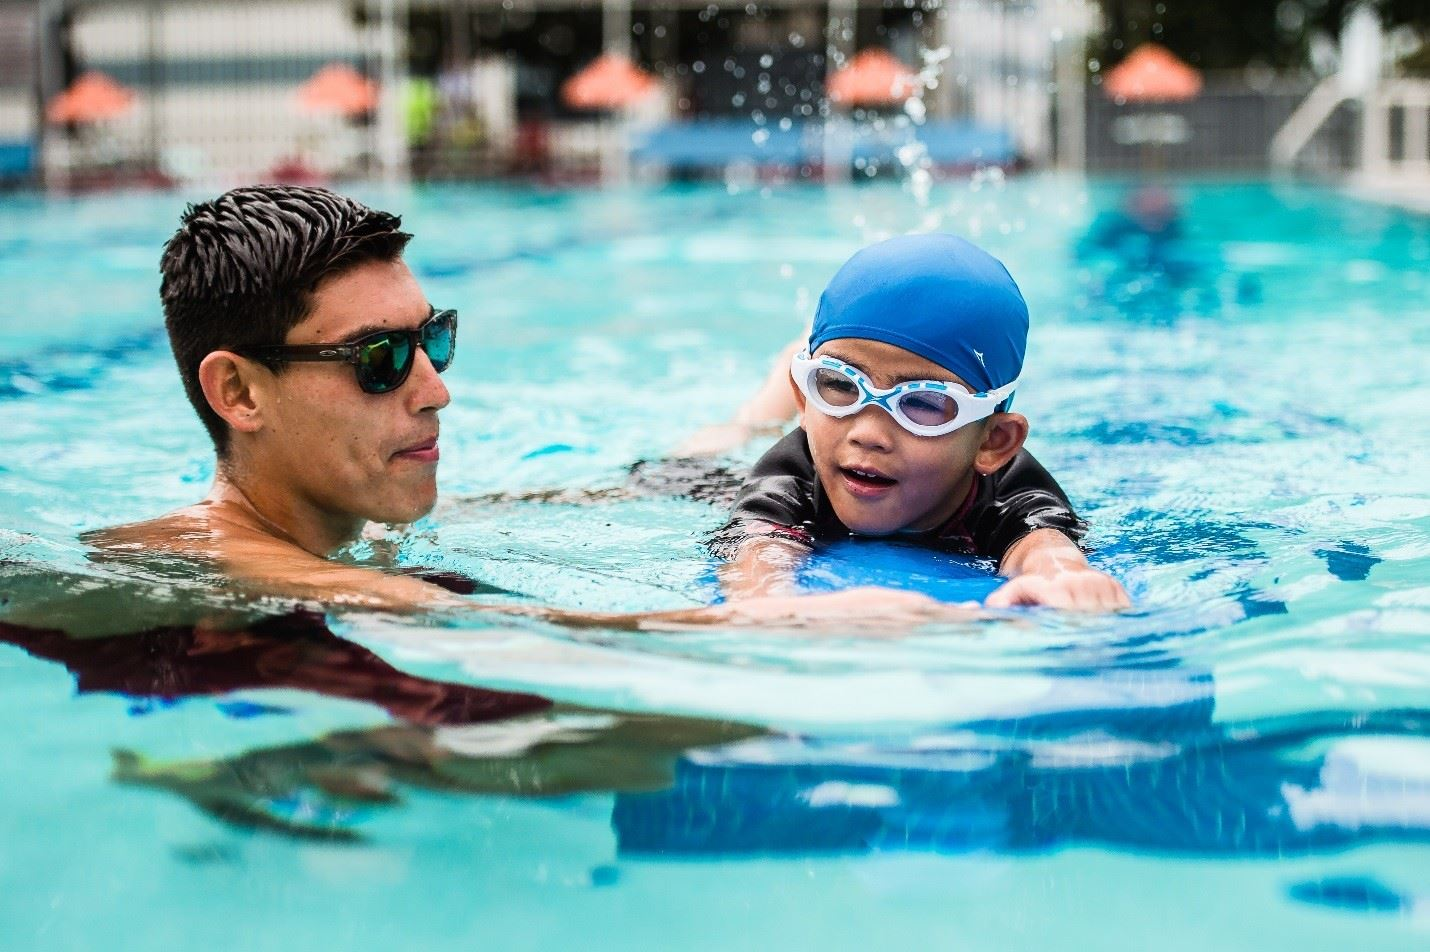 Take a final summer swim at Smith Park Pool this week